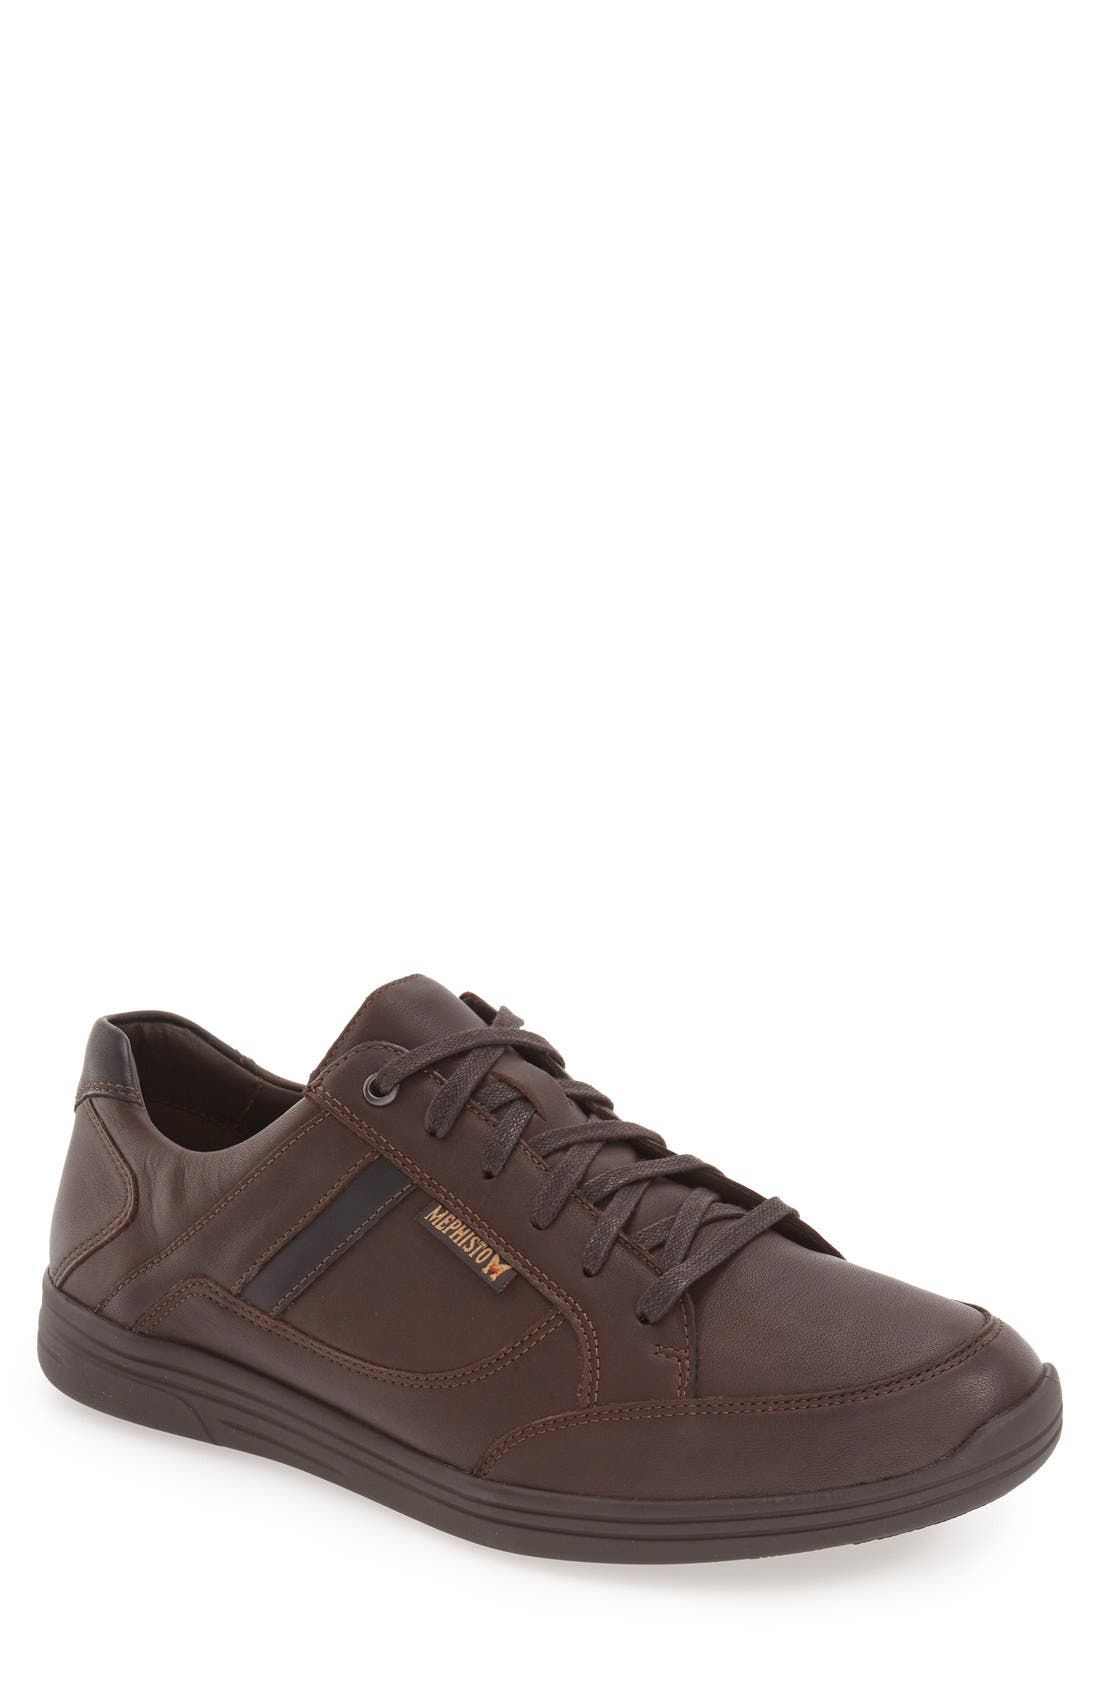 Alternate Image 1 Selected - Mephisto 'Frank GoWing' Sneaker (Men)